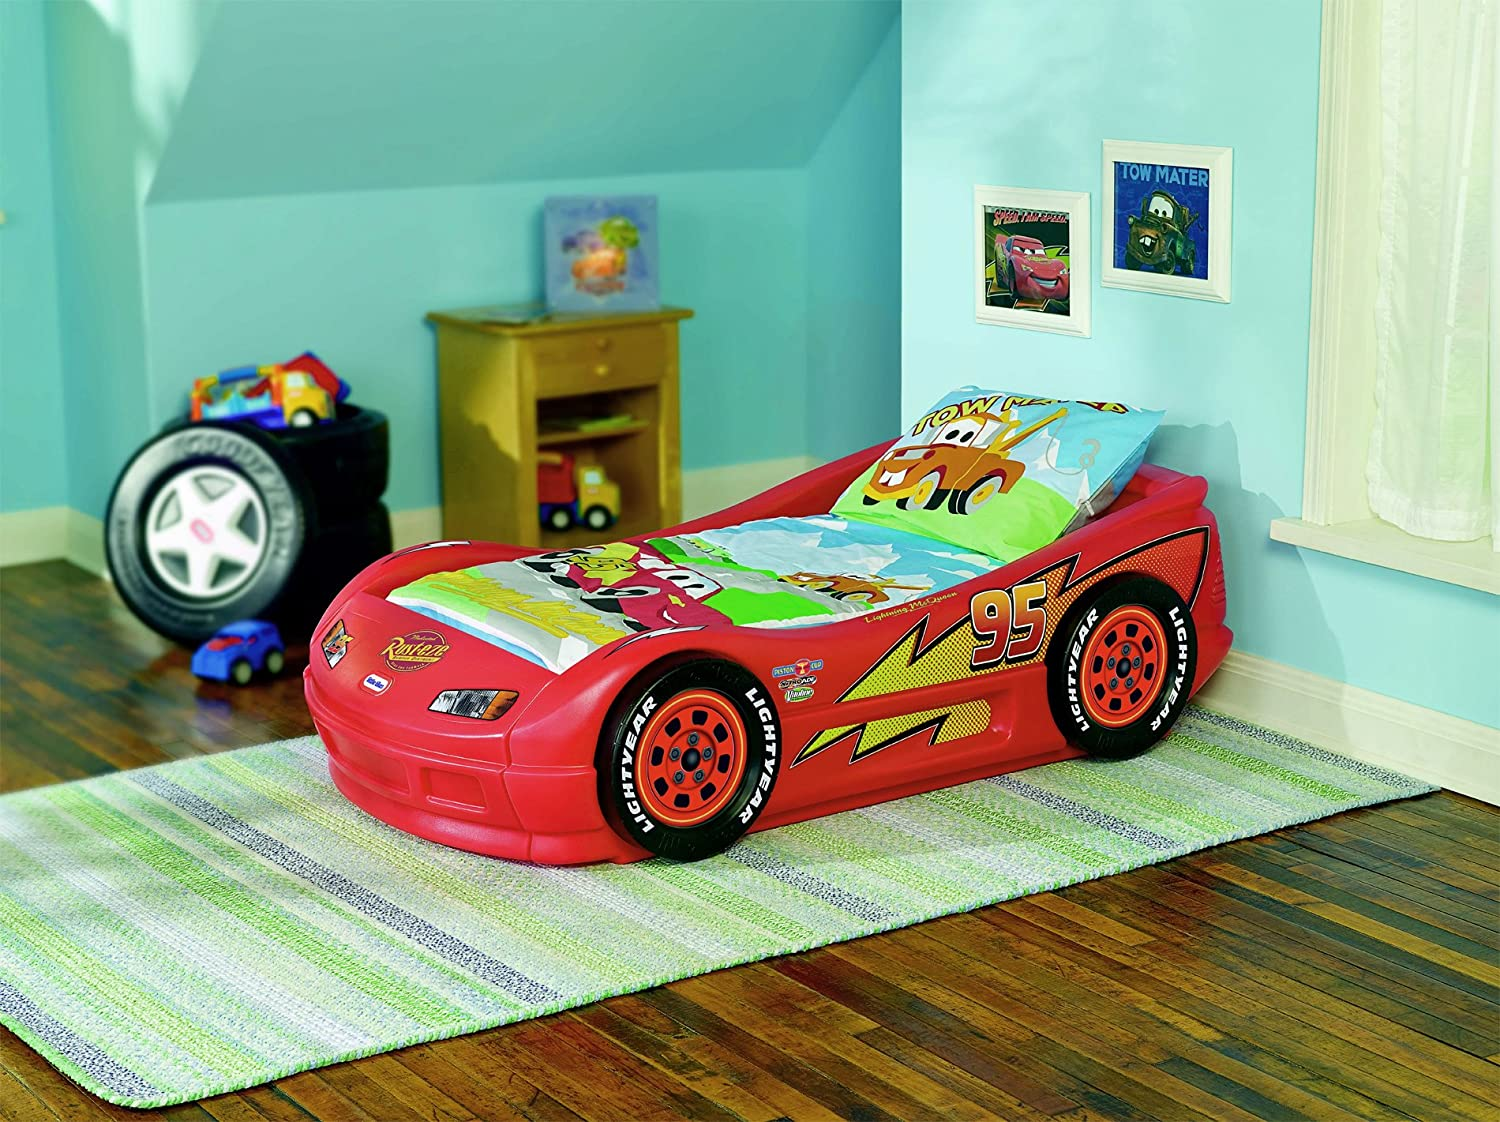 Little tikes lightning mcqueen toddler bed - Amazon Com Little Tikes Lightning Mcqueen Roadster Toddler Bed Toys Games